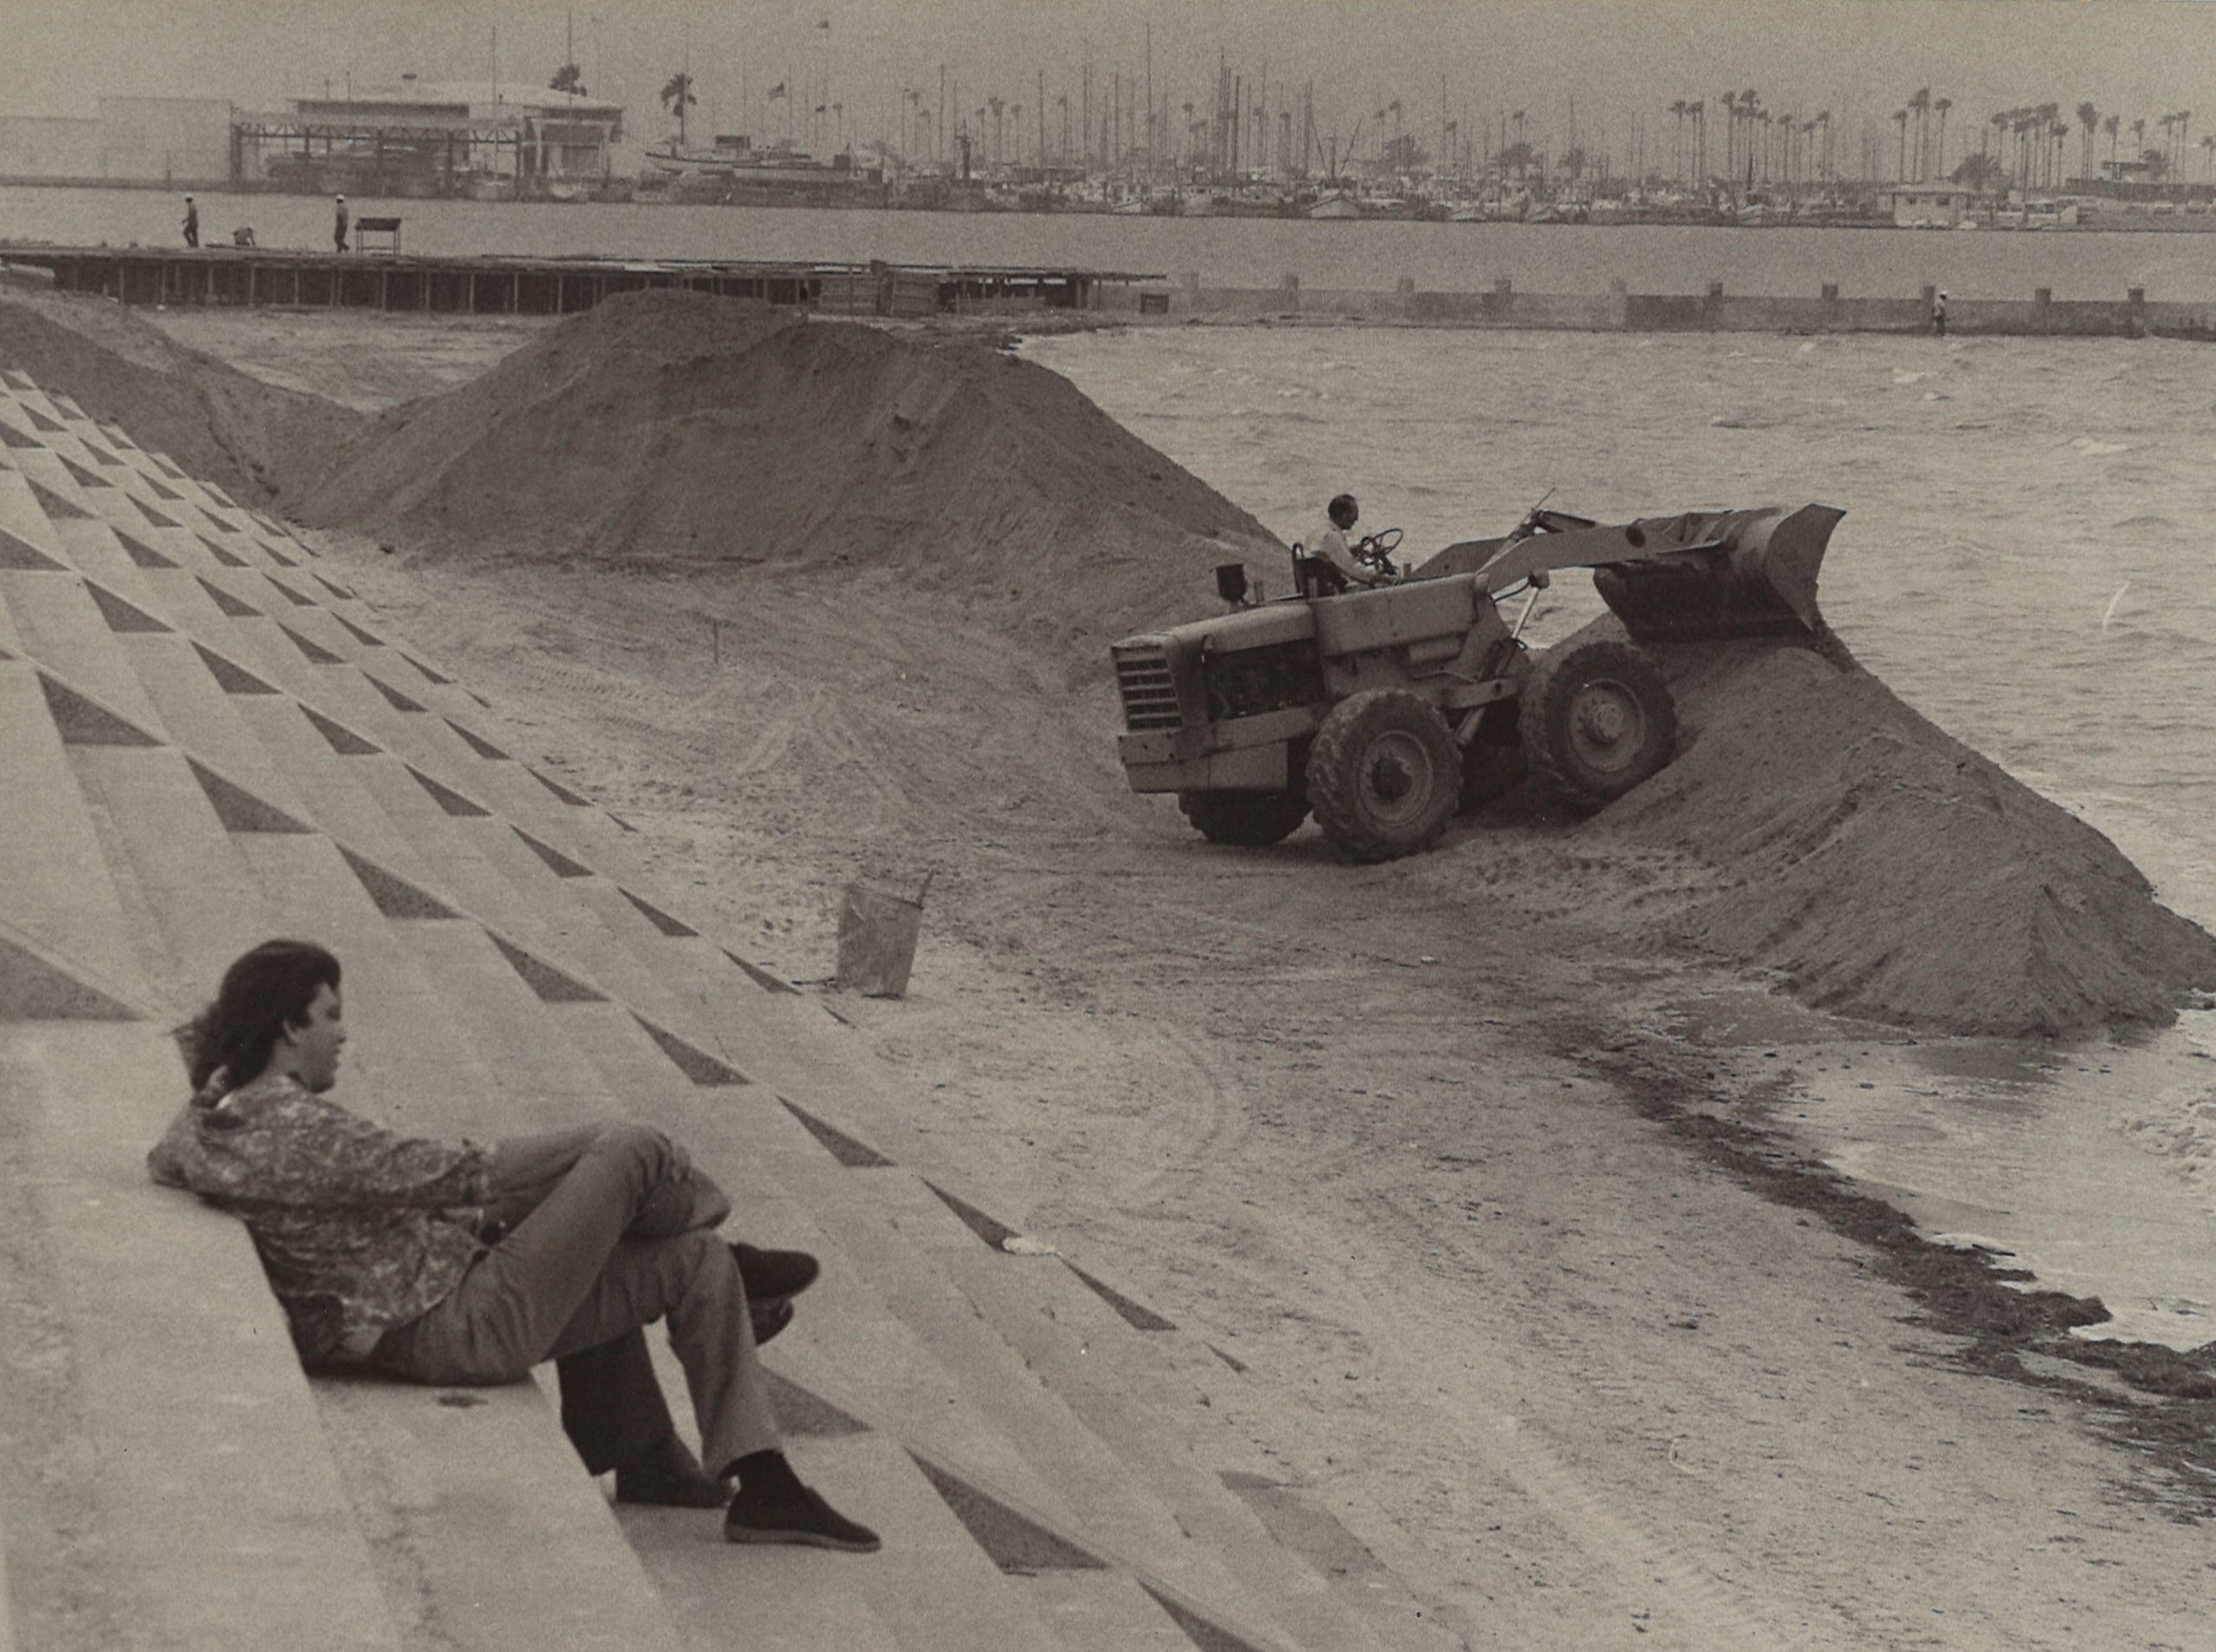 A man watches from the seawall as workers begin adding sand to McGee Beach in downtown Corpus Christi on May 7, 1975. About 4,500 cubic yards of sand taken from the banks of the Nueces River were added to the beach to widen it as part of a $350,000 improvement project that year. The elevated walkway in the background was being added to prevent the erosion of the sand.